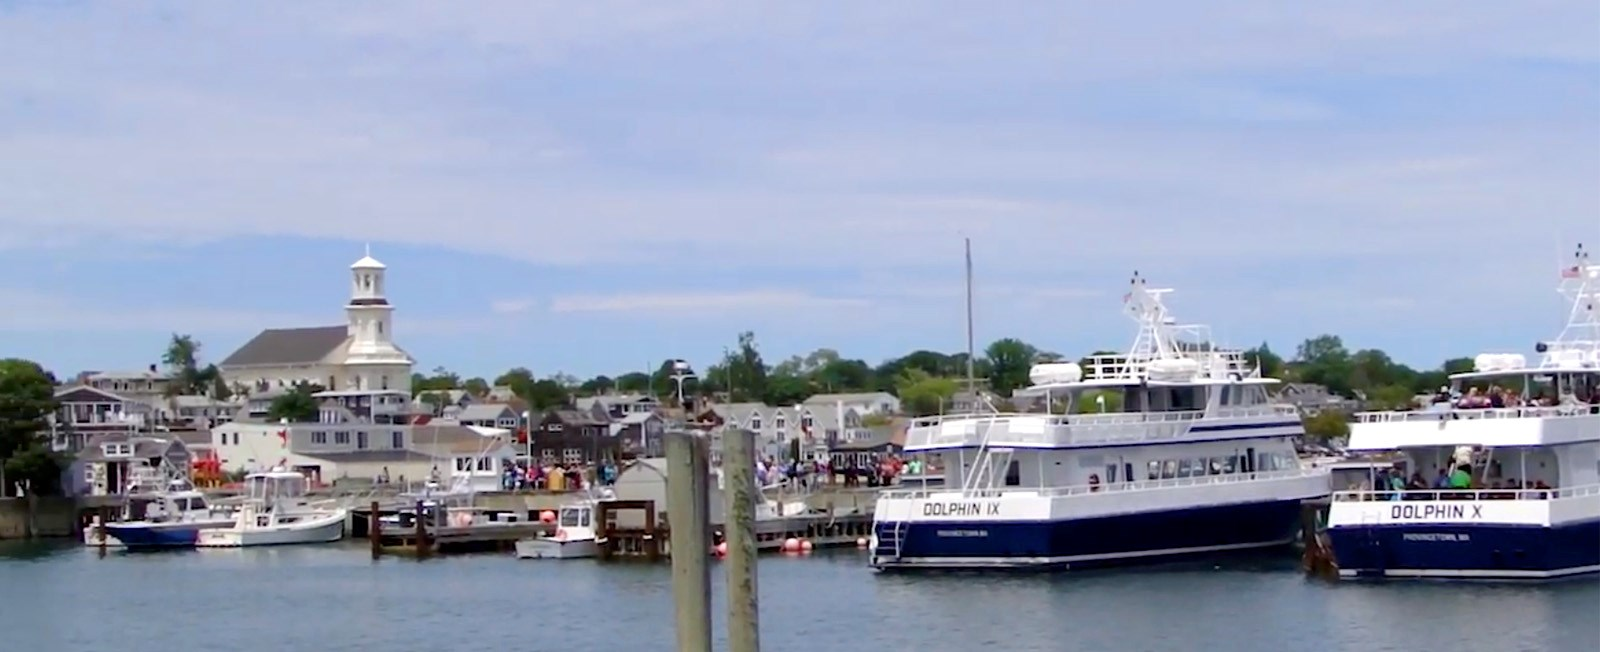 Come along as we head out to explore the Outer Cape towns of Provincetown, Truro, Wellfleet, and Eastham!